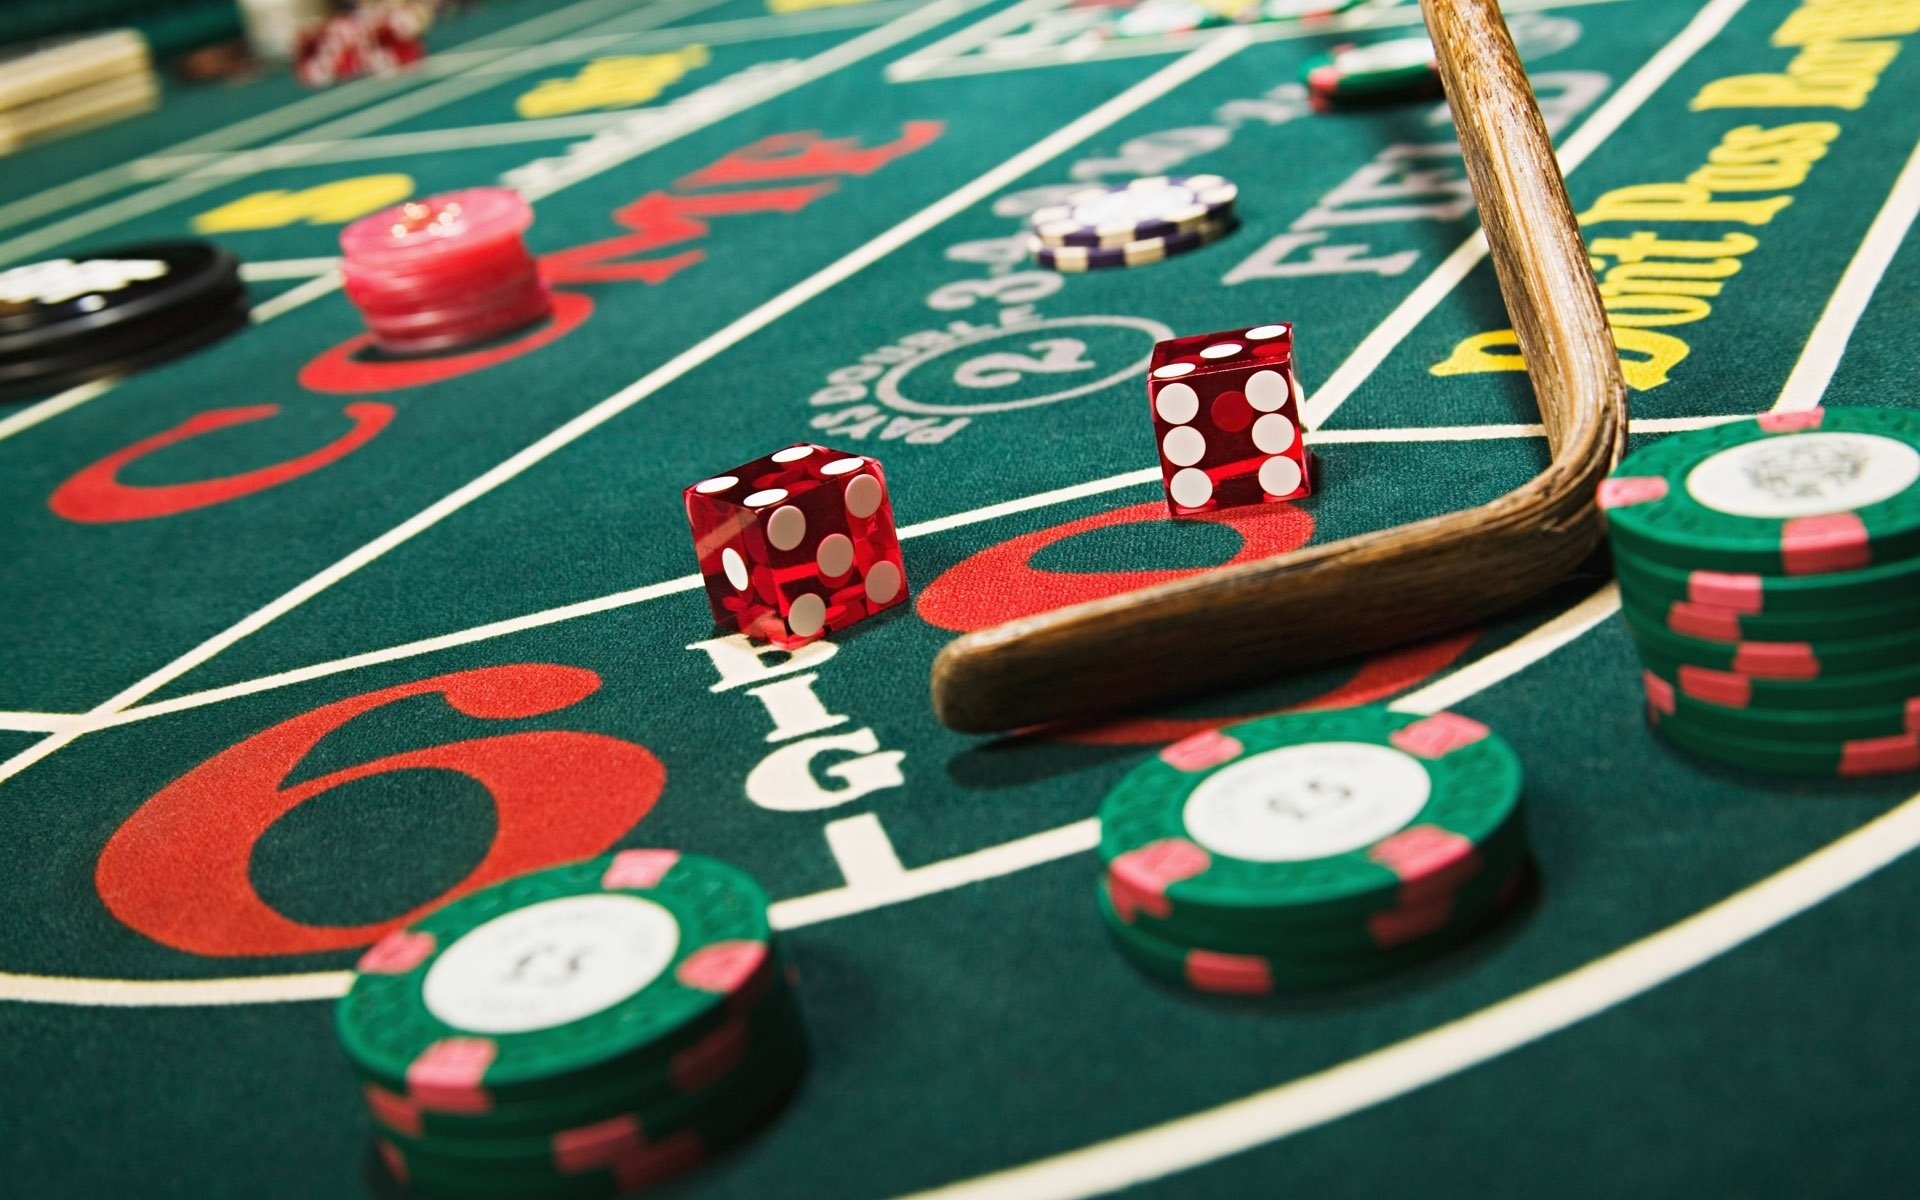 Famous Casino Video Game In The U.S.A.